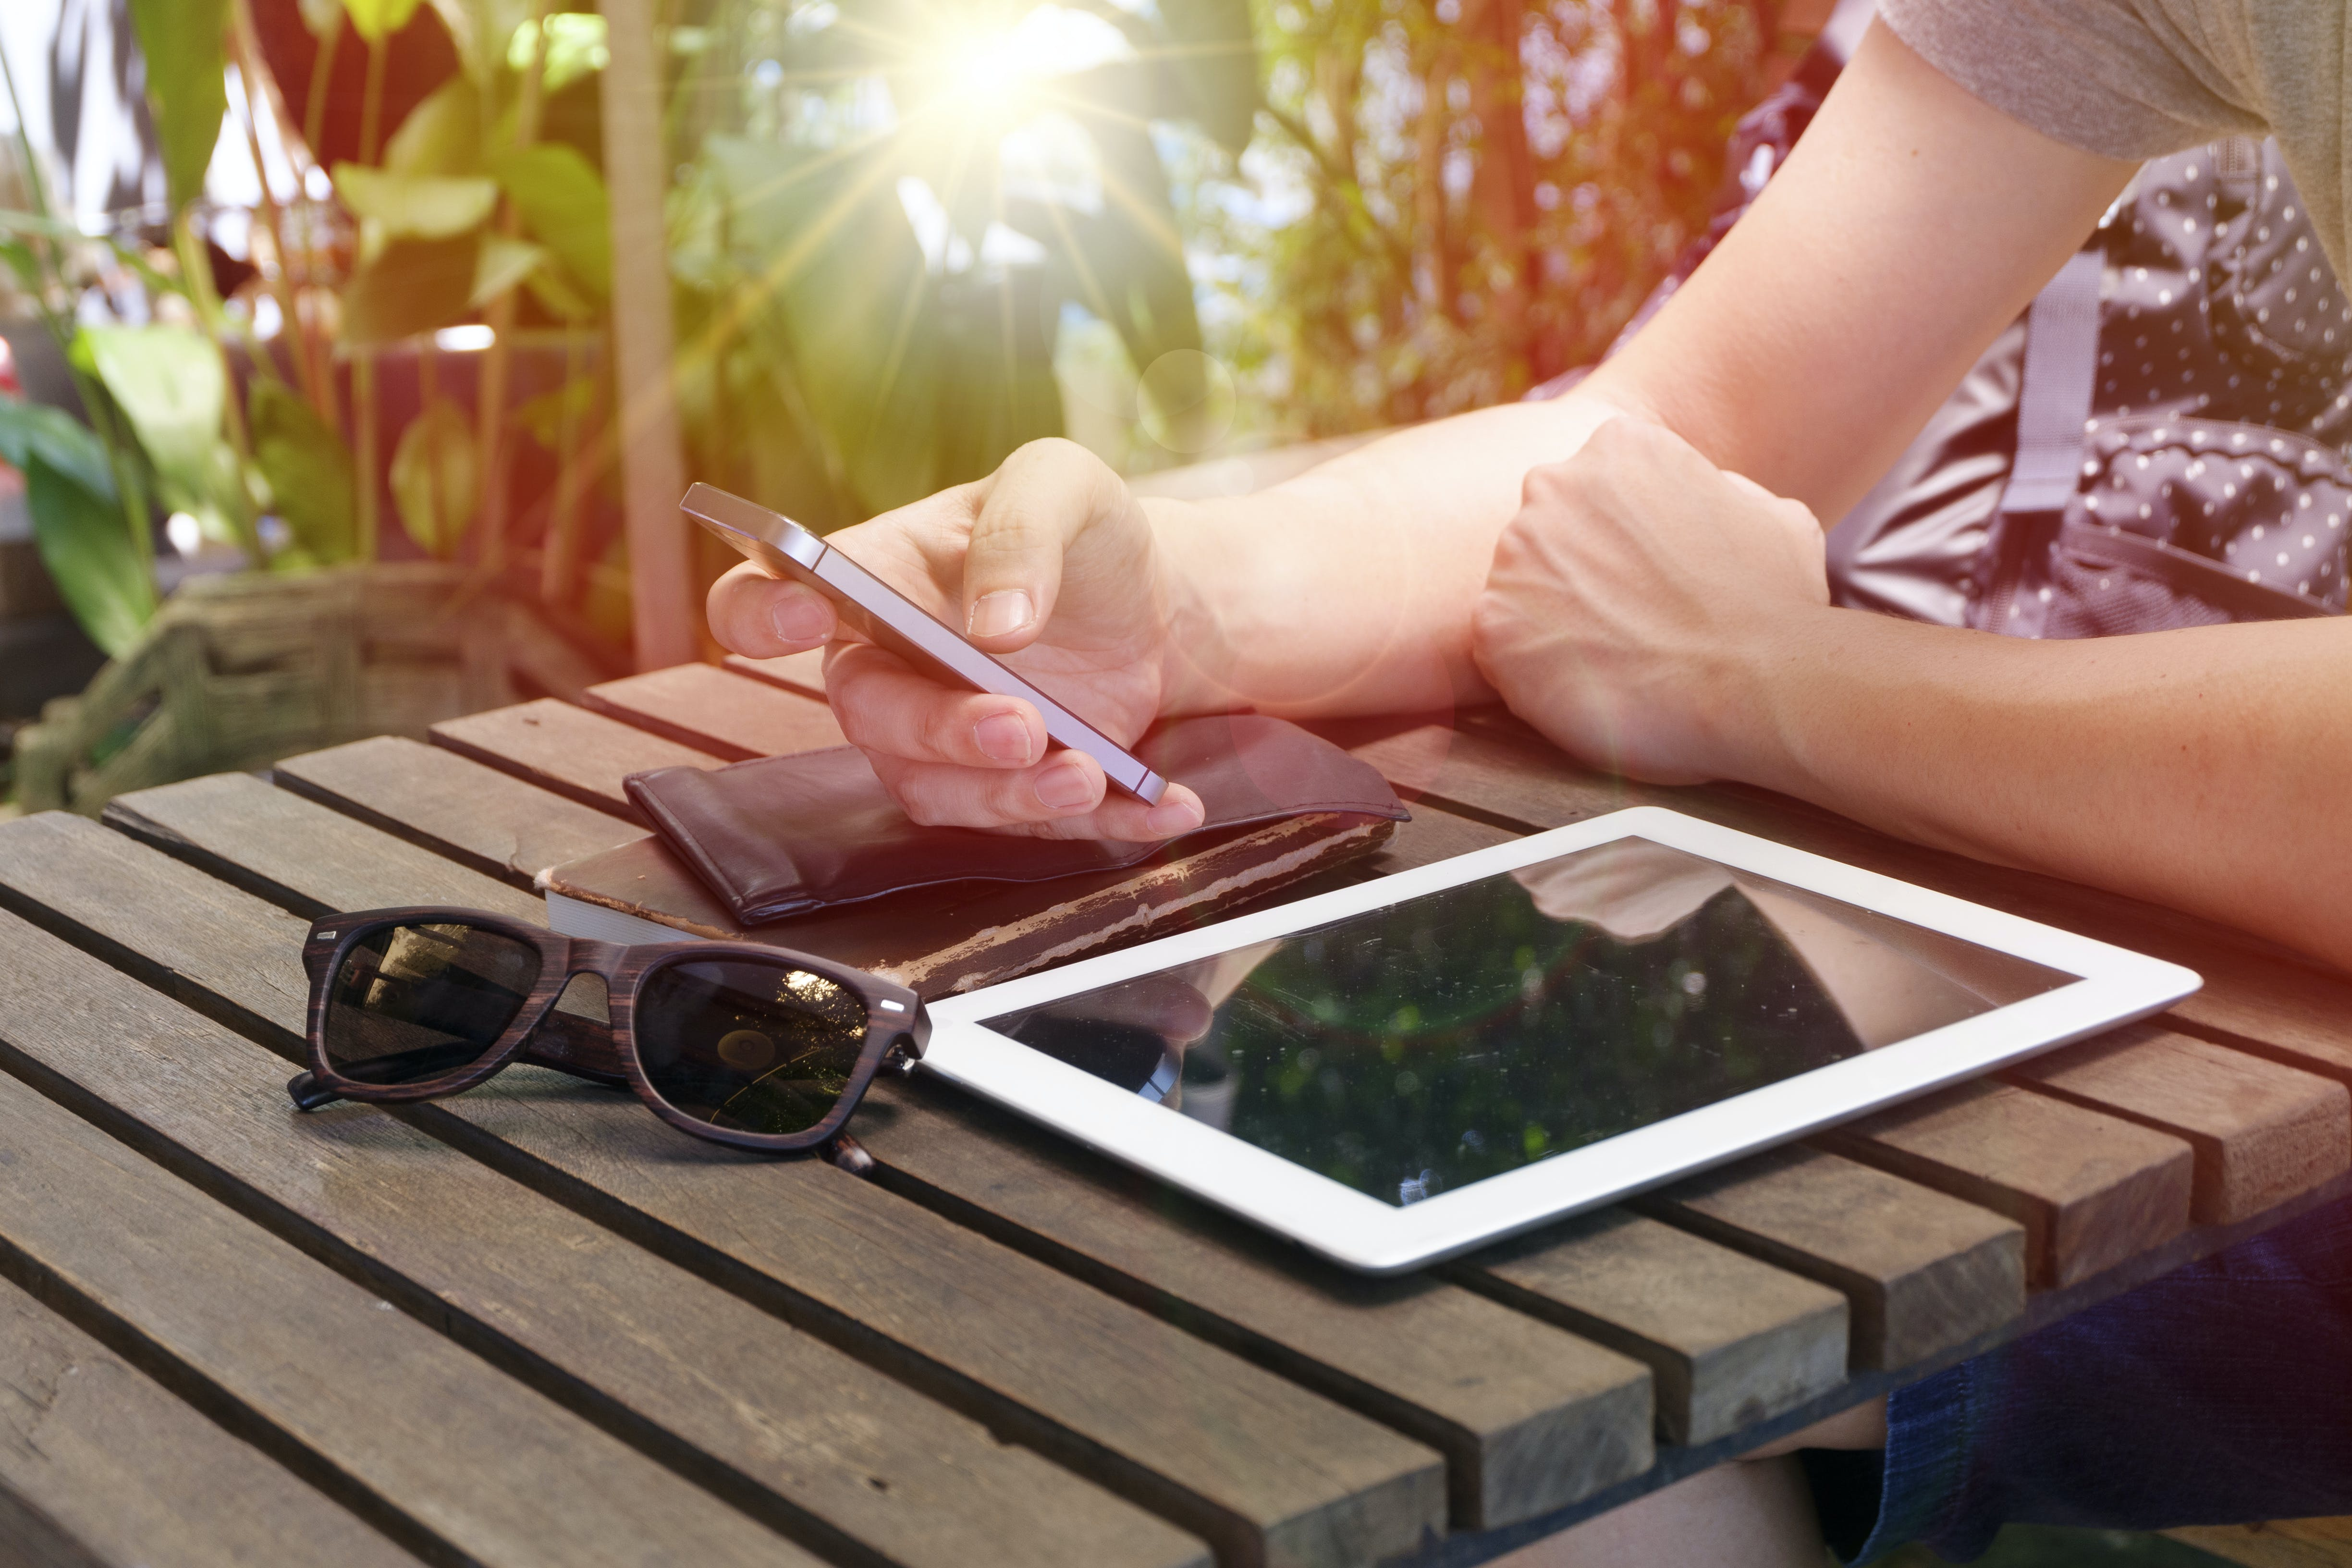 Free stock photo of sunglasses, hands, smartphone, table